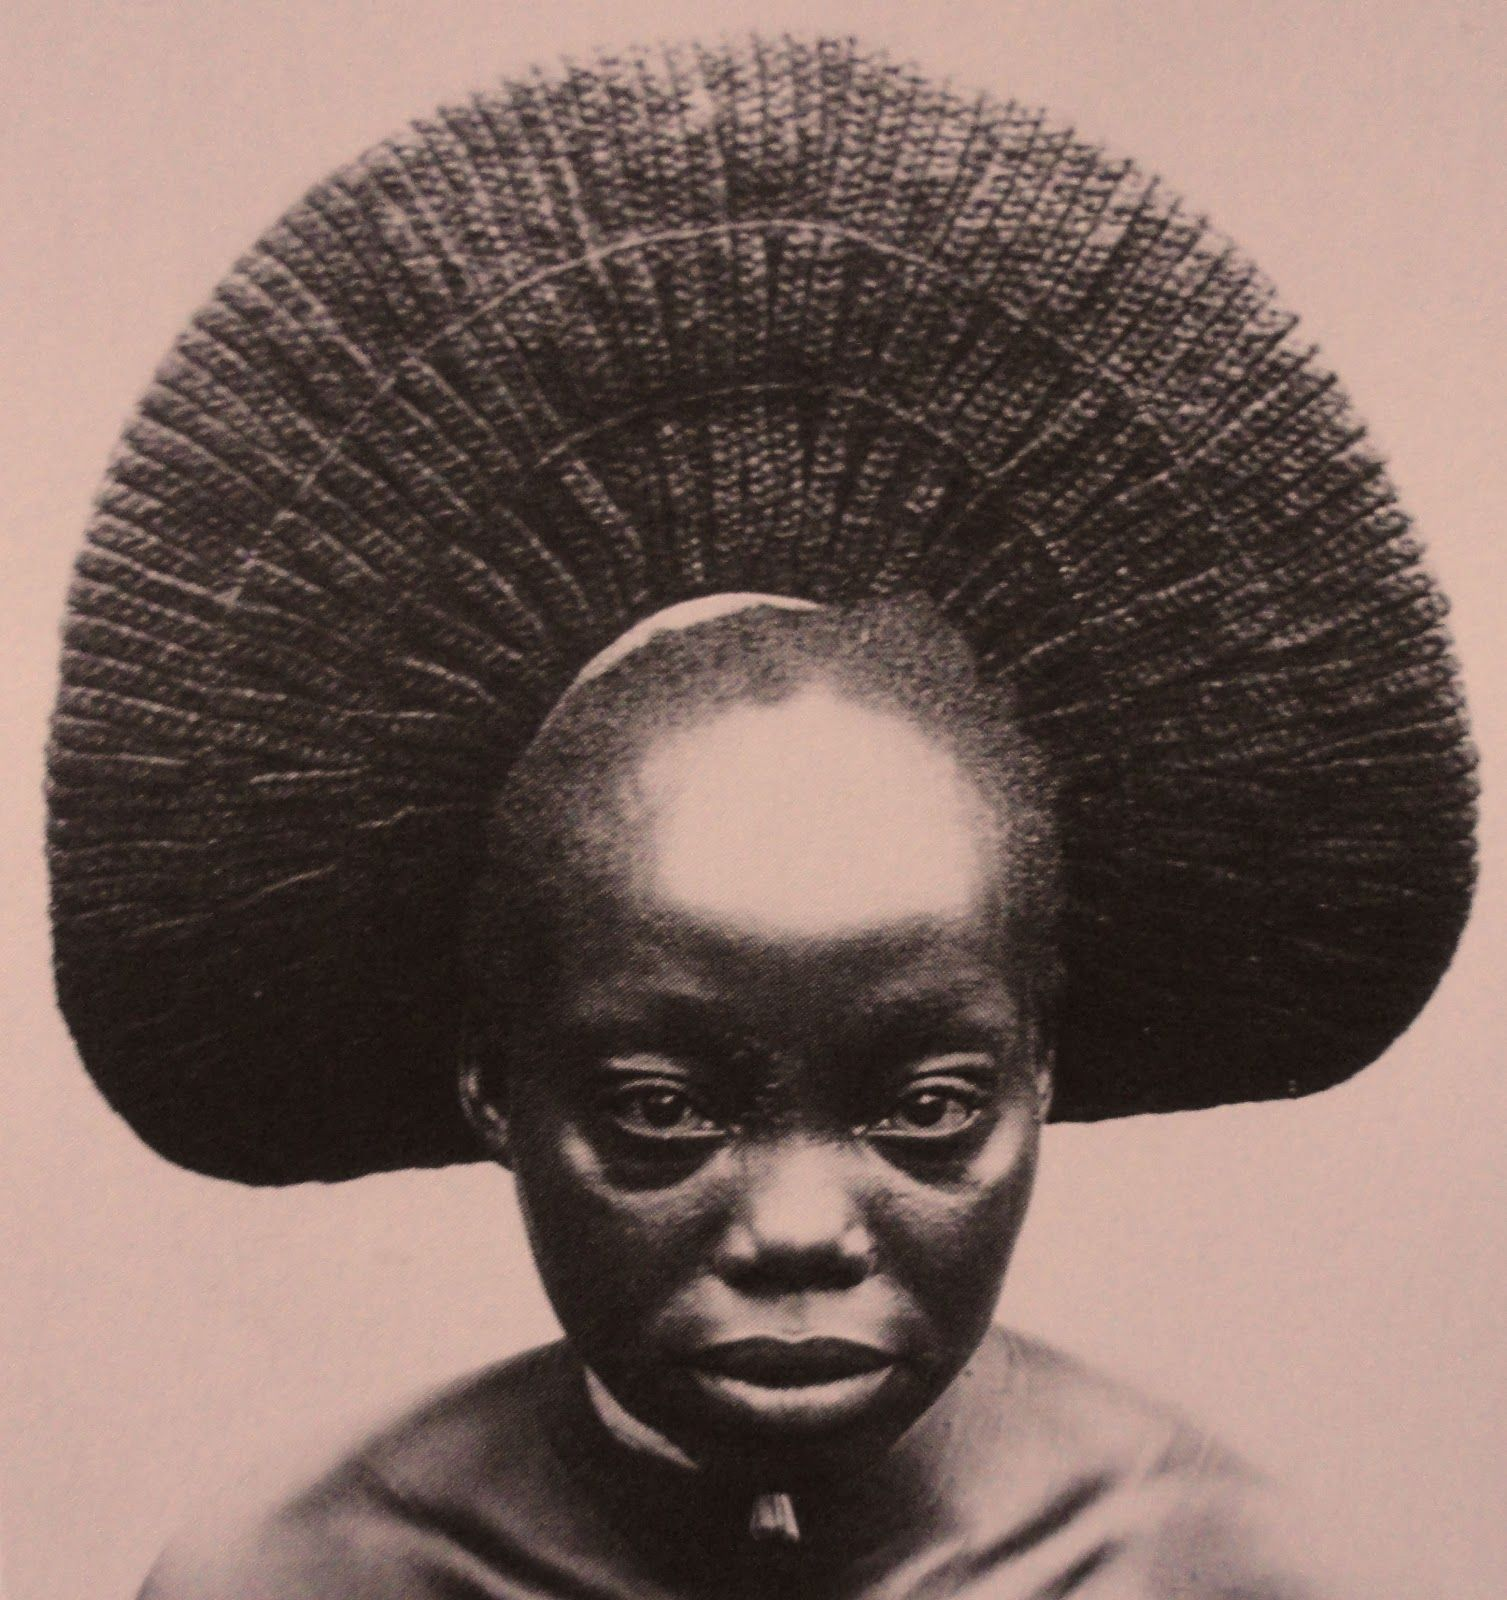 comb, curl and coiffer: african hairstyles | madam meow / holly